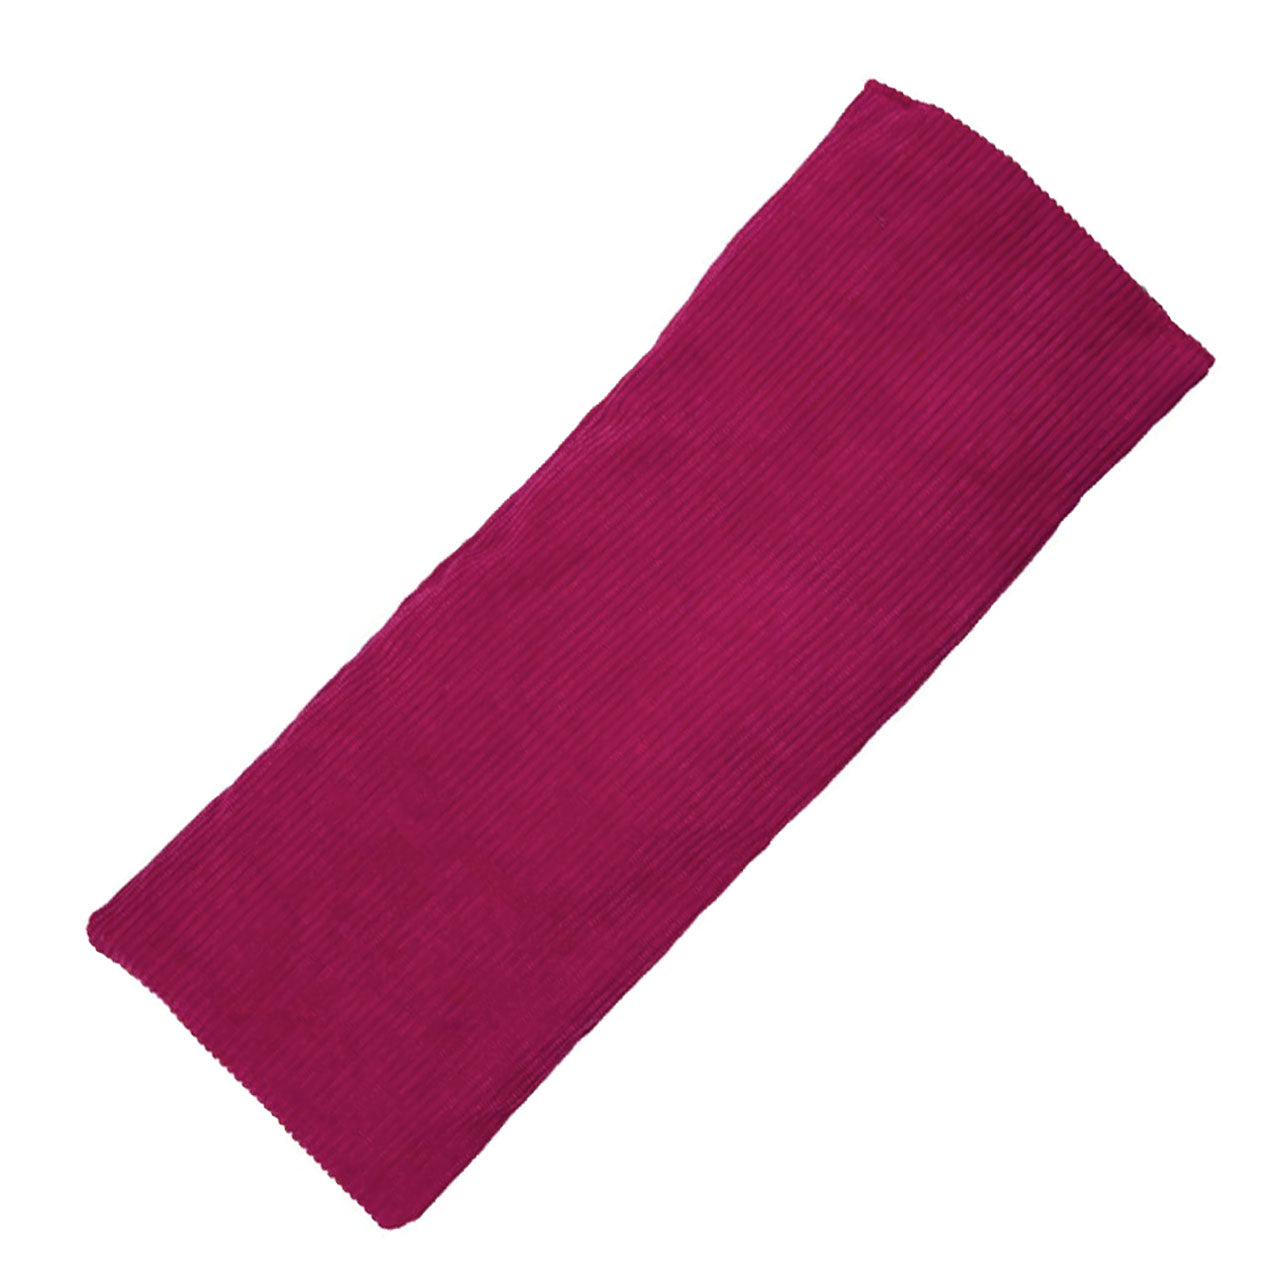 Wheat Bag - Magenta Cord - The Grain Shop Online Store